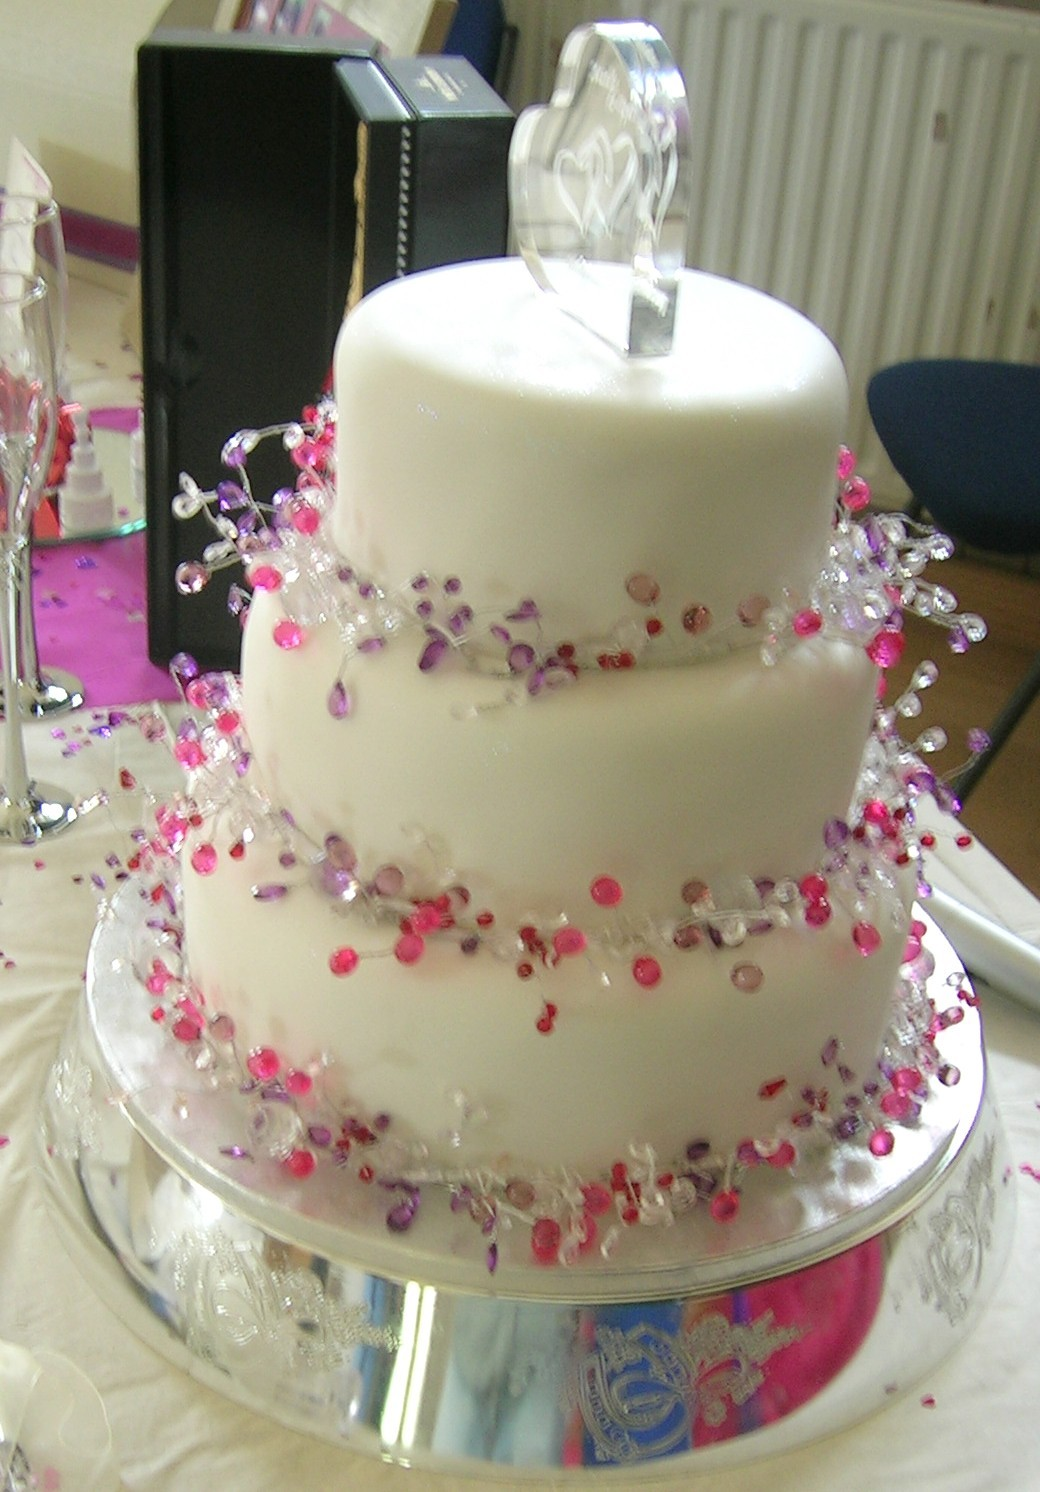 Cake Decorations And Ideas : Wedding Pictures Wedding Photos: Wedding Cake Decorating ...